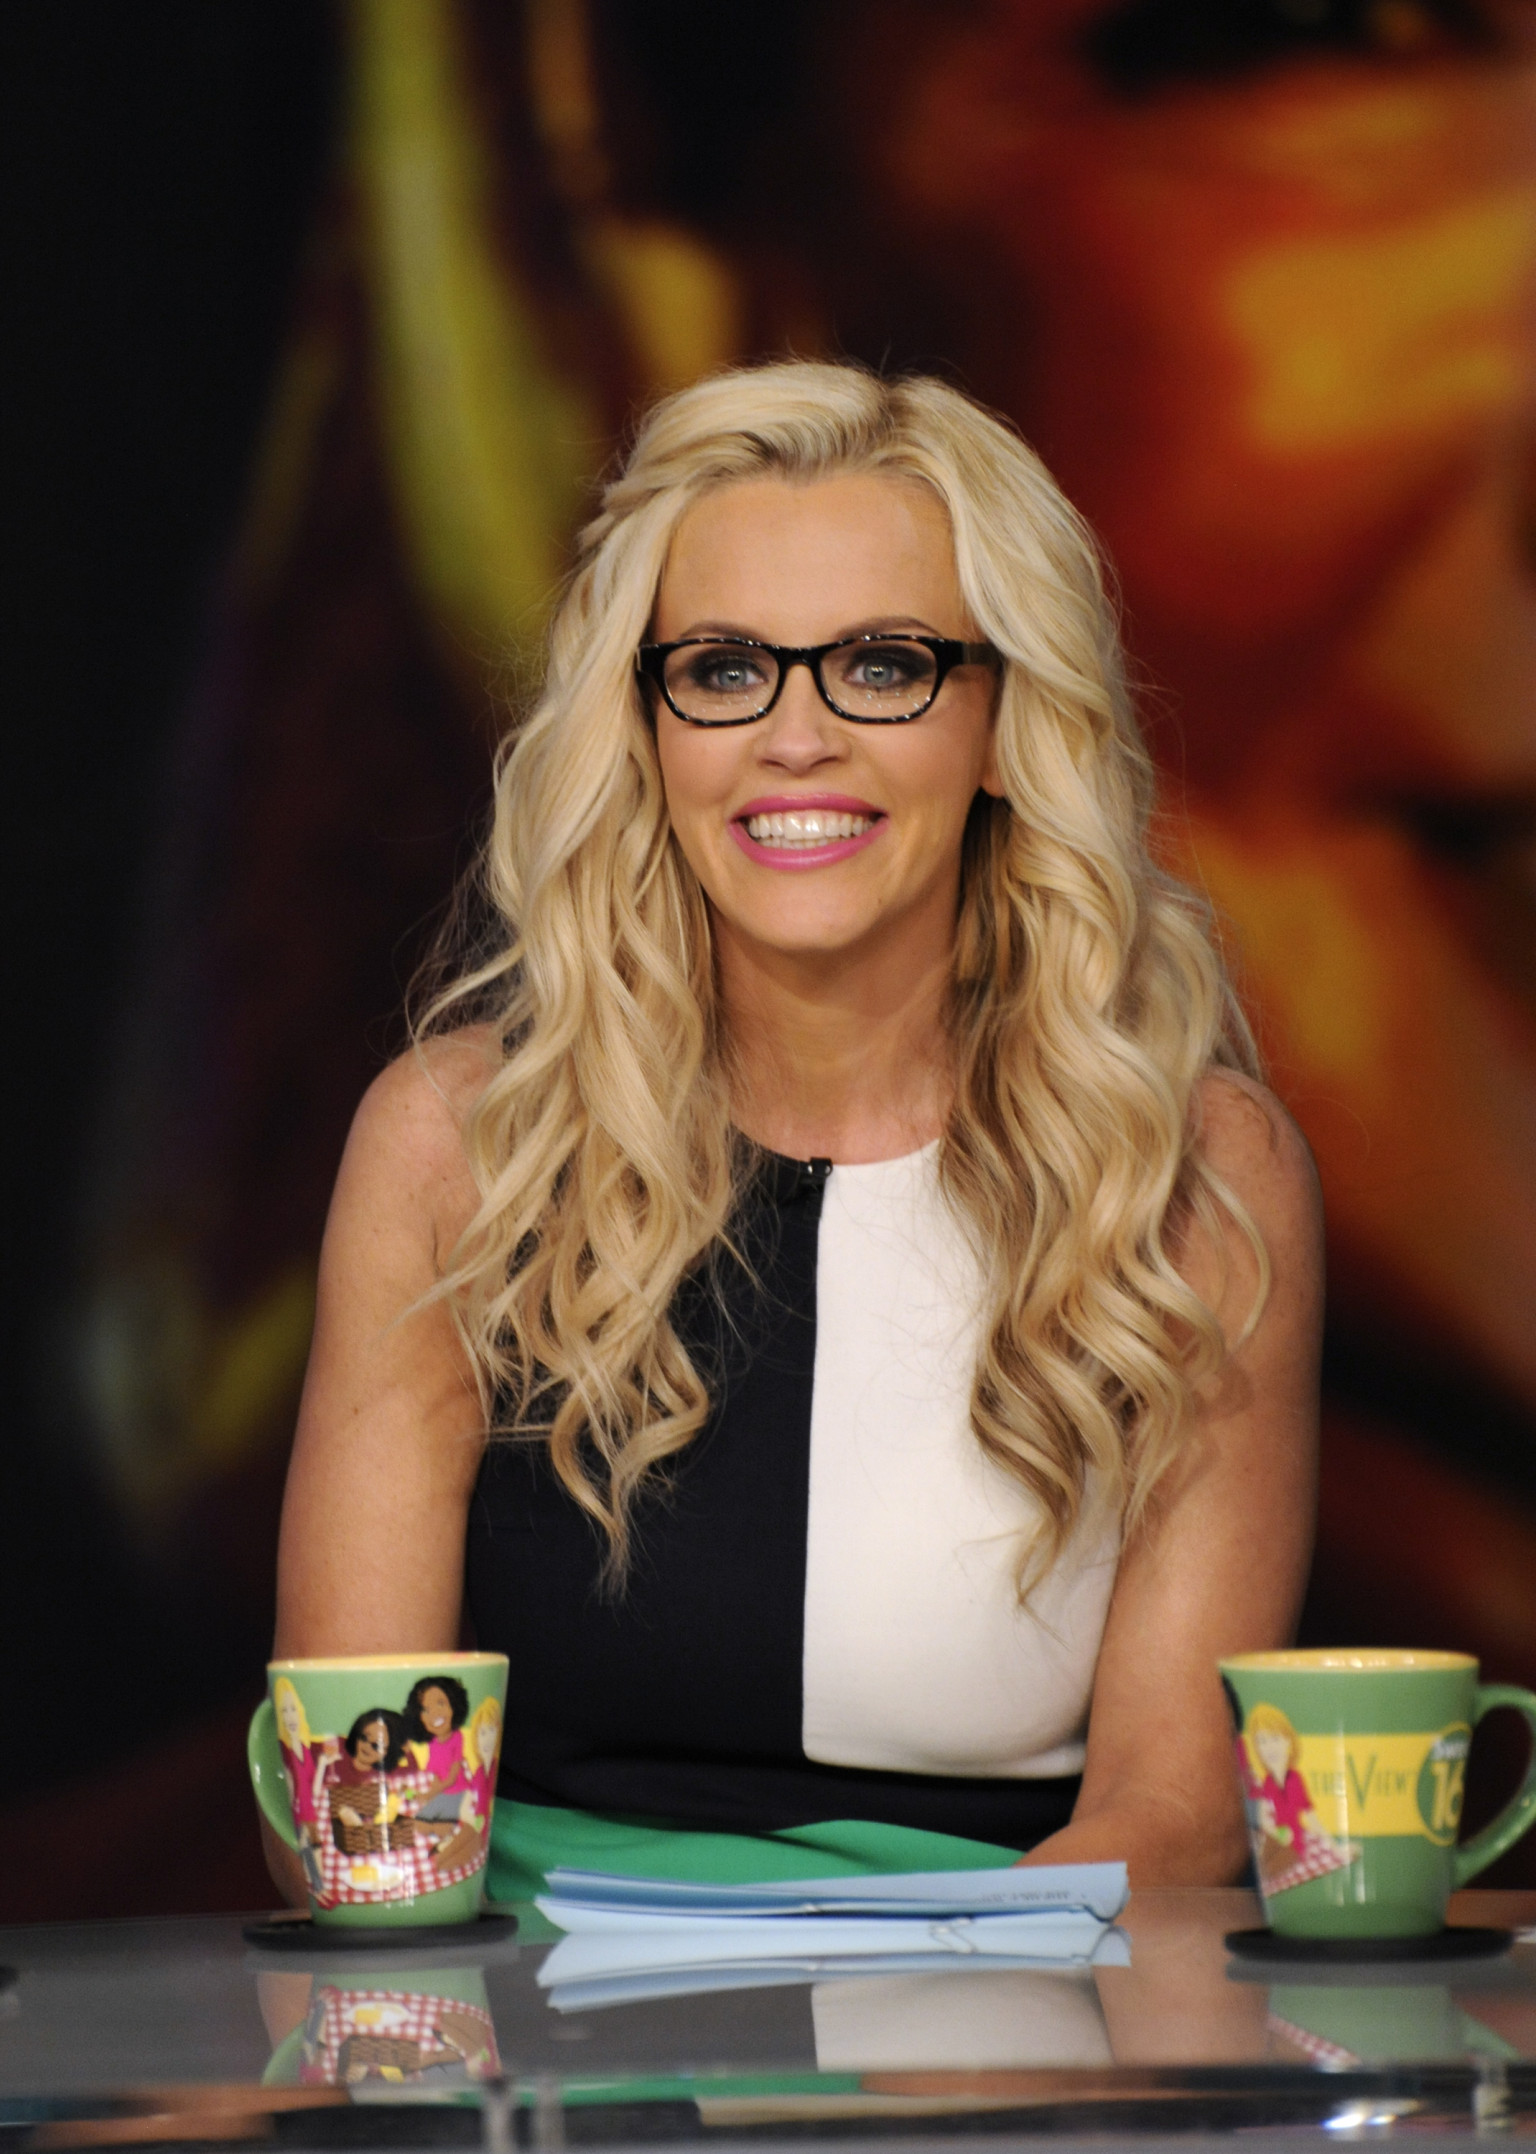 Image search: Jenny McCarthy Playpoy 2012